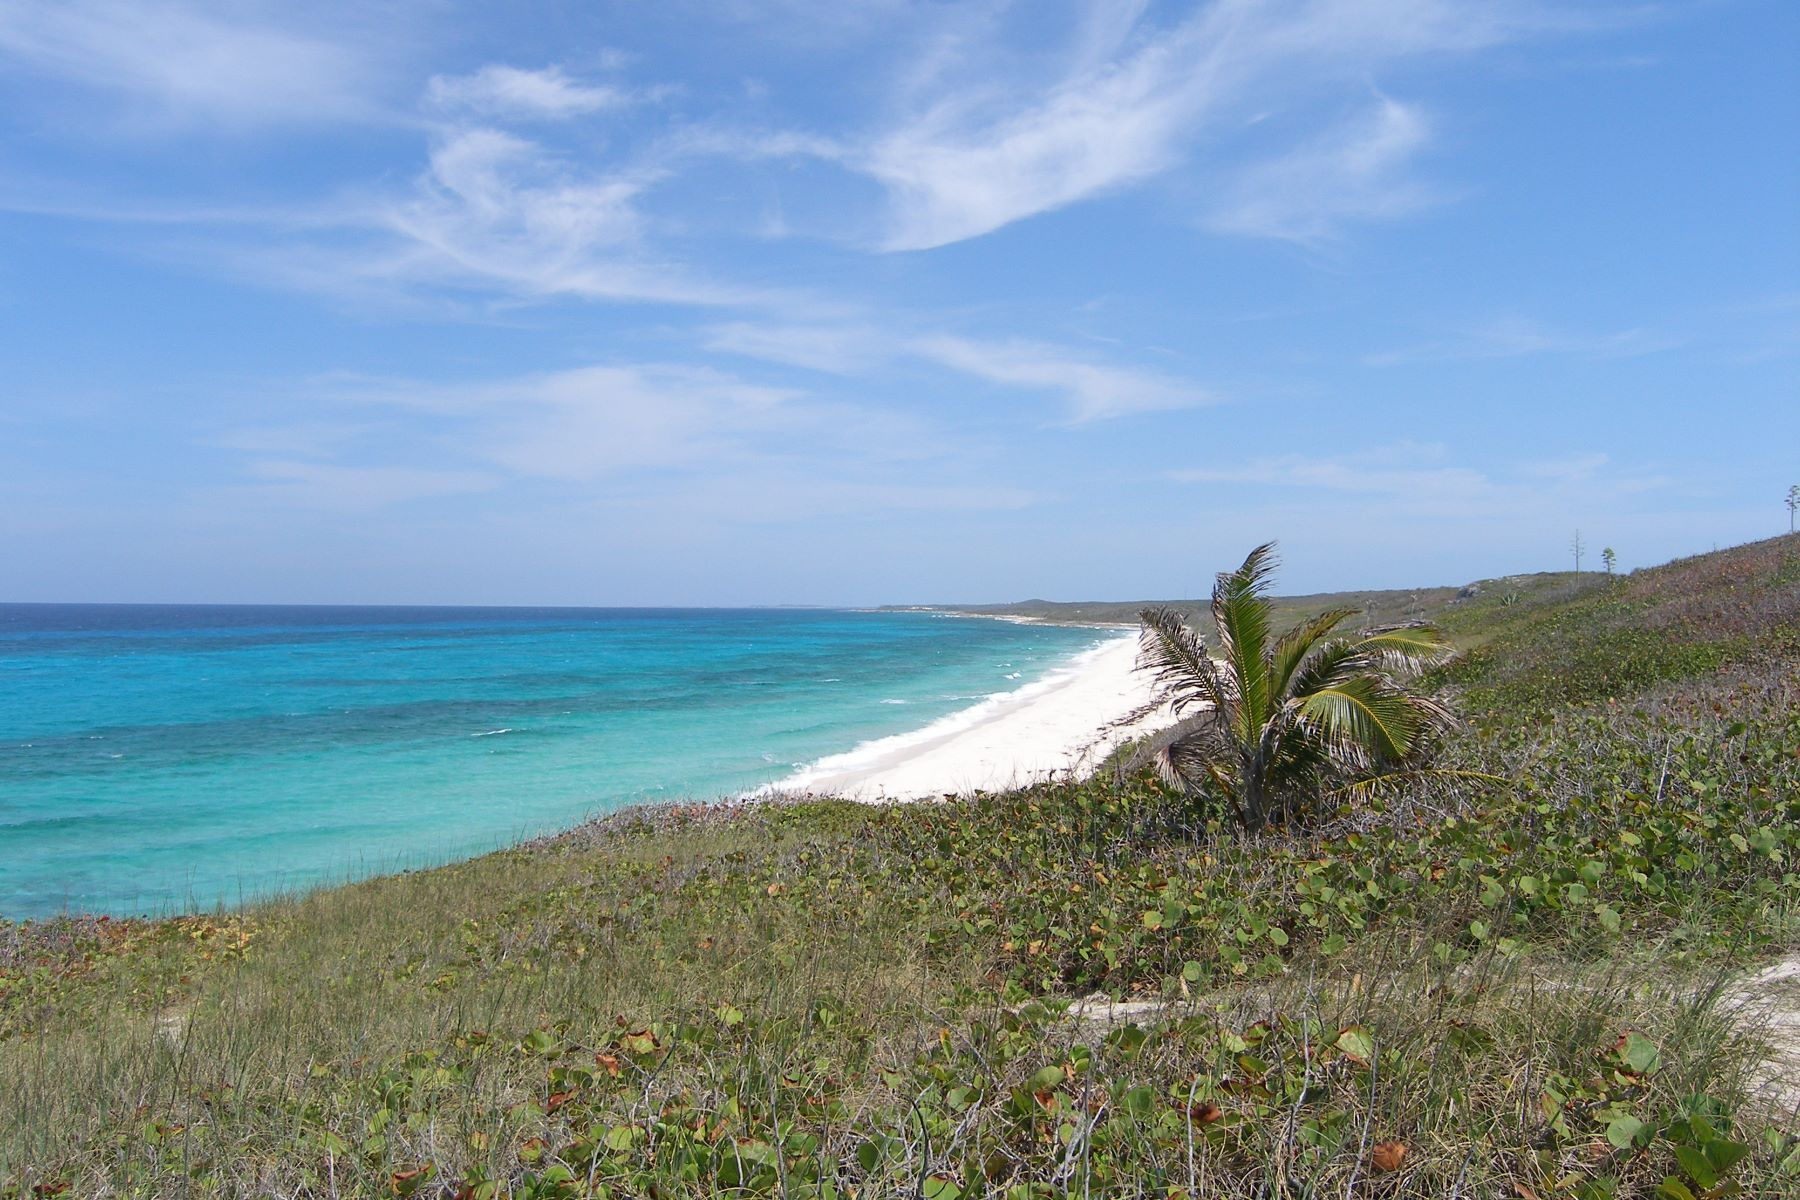 Terrain pour l Vente à Lots 13,14,& 15, Block 79, Section J Gregory Town, Eleuthera Bahamas